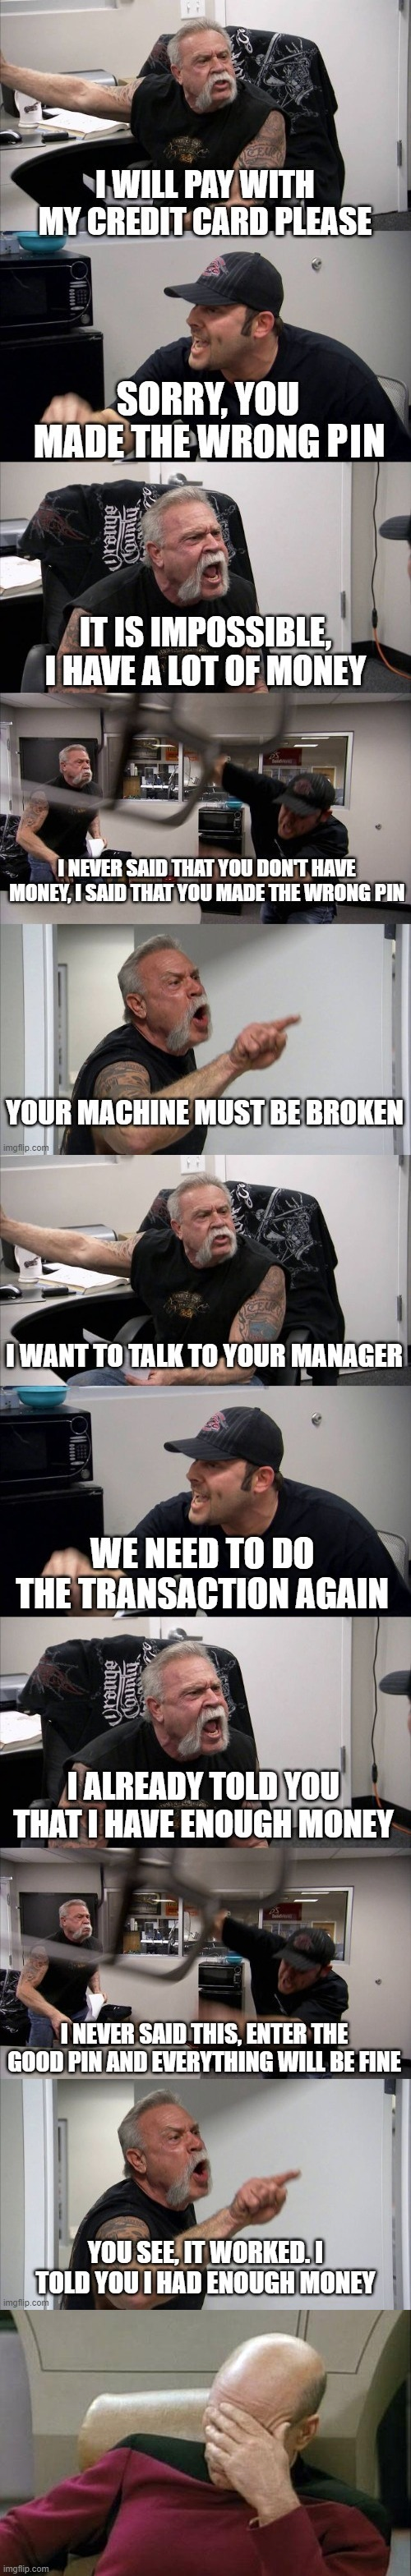 This happen to every cashiers from time to time | image tagged in captain picard facepalm,american chopper argument,money,cashier,dumb,cashier meme | made w/ Imgflip meme maker